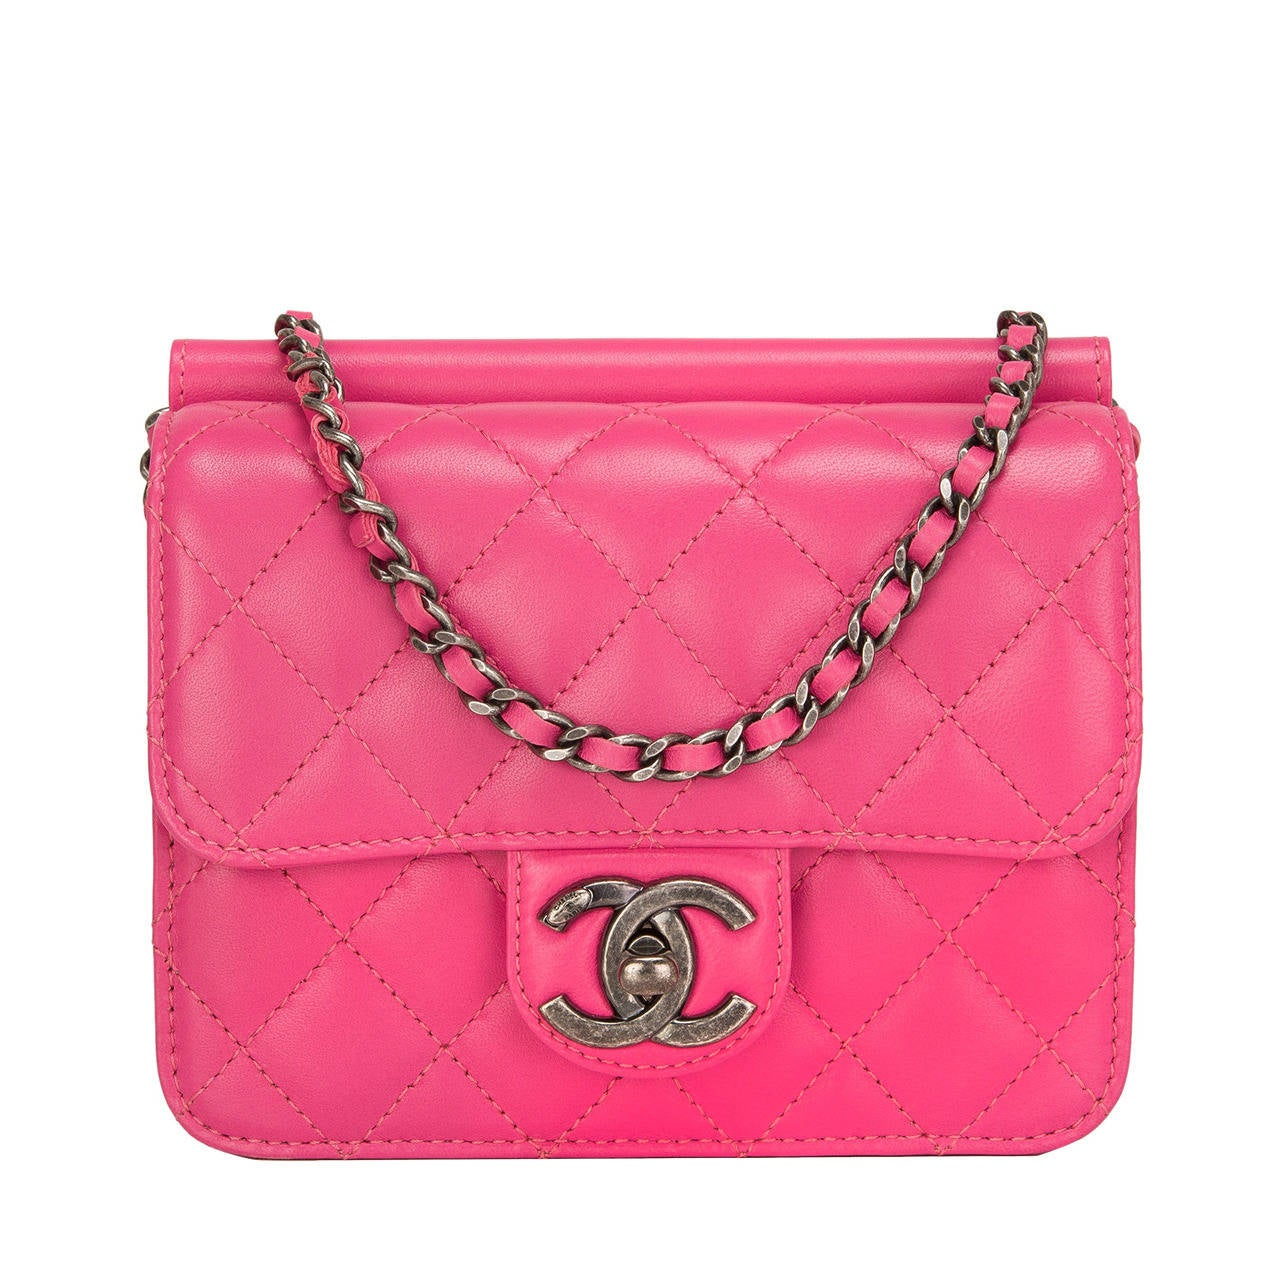 Chanel Pink Crossing Times Mini Flap Bag For Sale